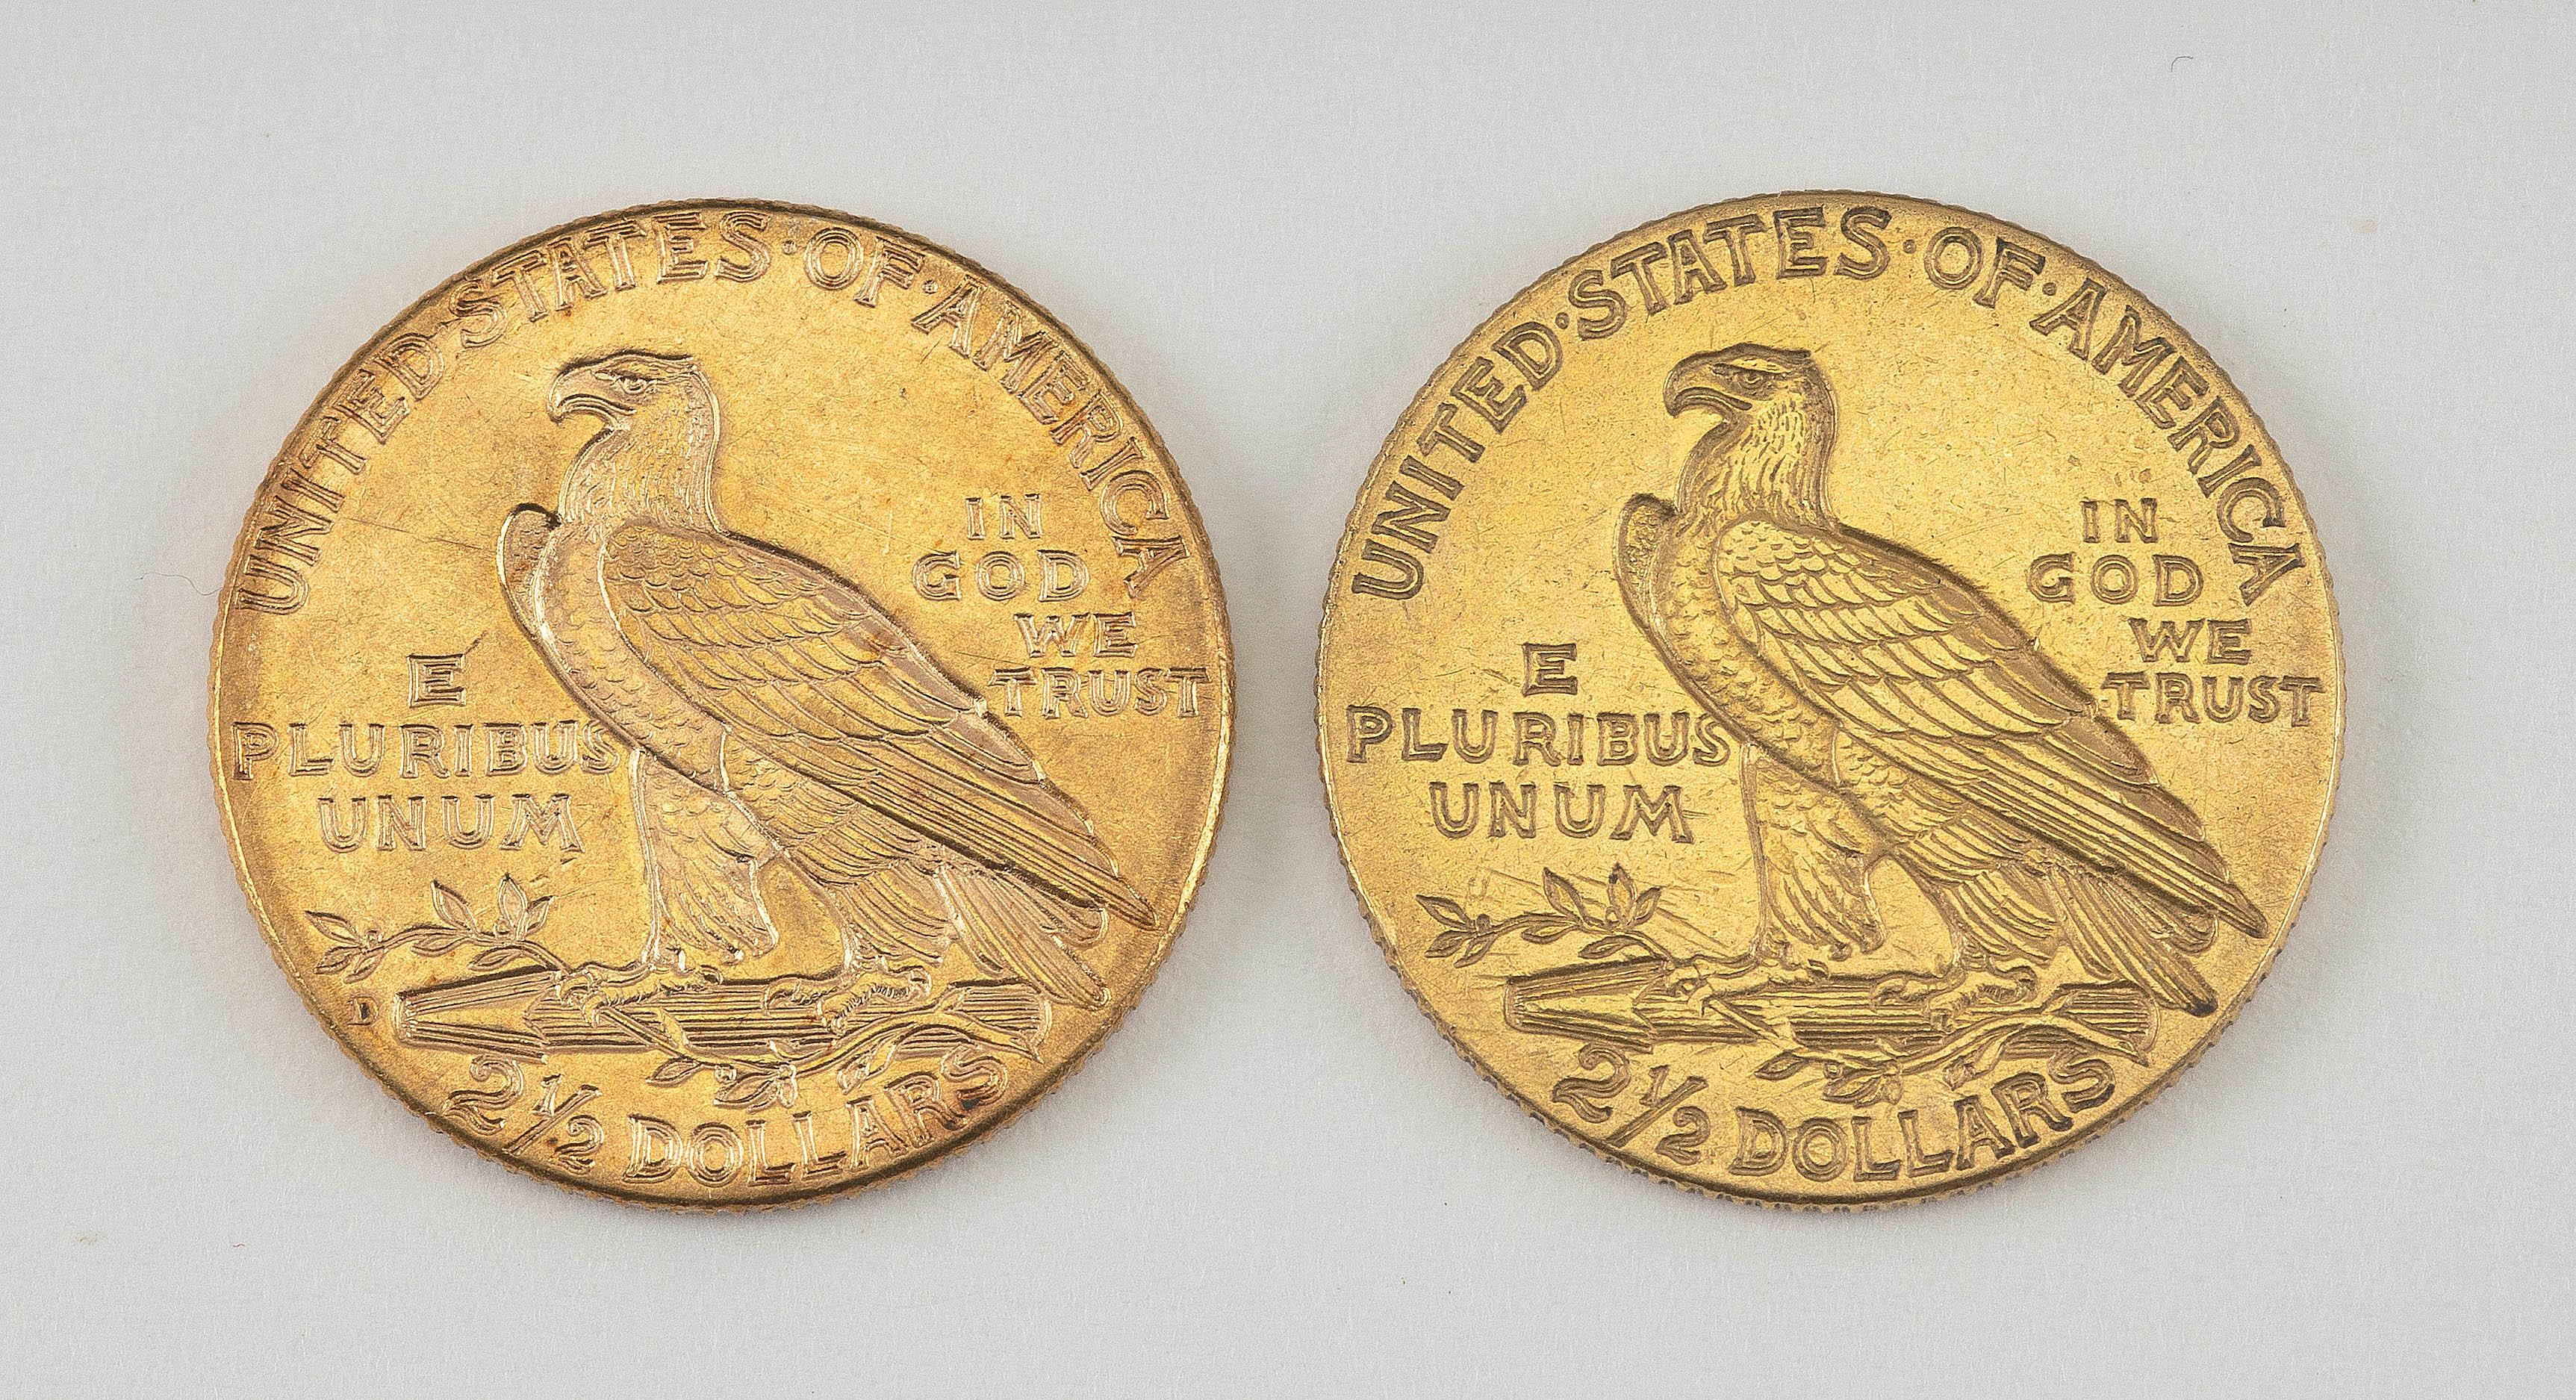 1915 AND 1925 TWO-AND-A-HALF DOLLAR GOLD PIECES